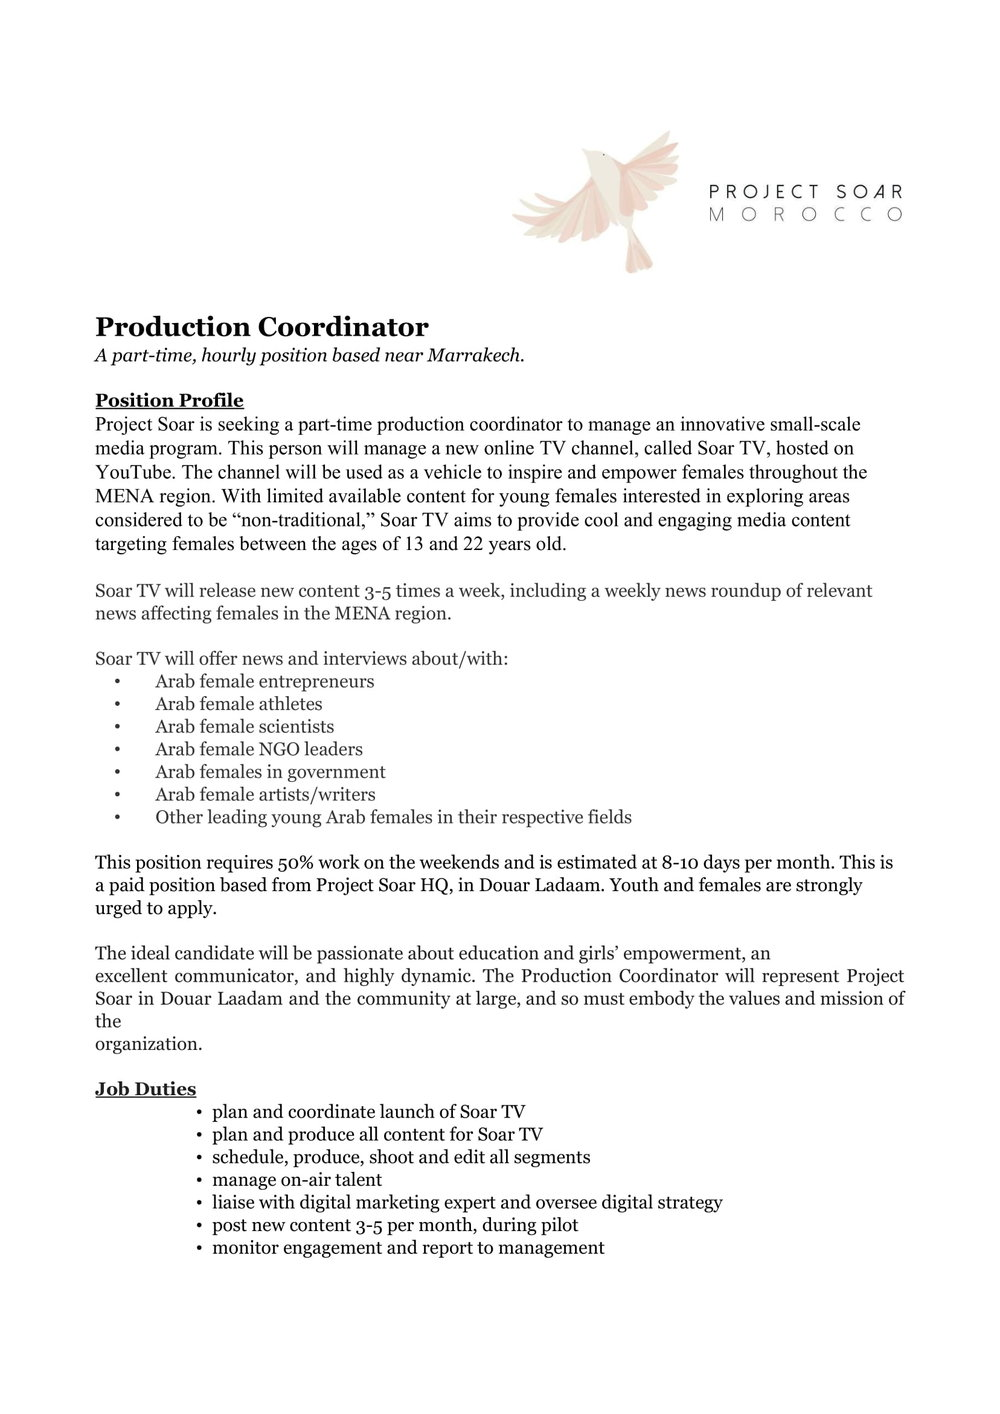 Production Coordinator Job Description-1.jpg